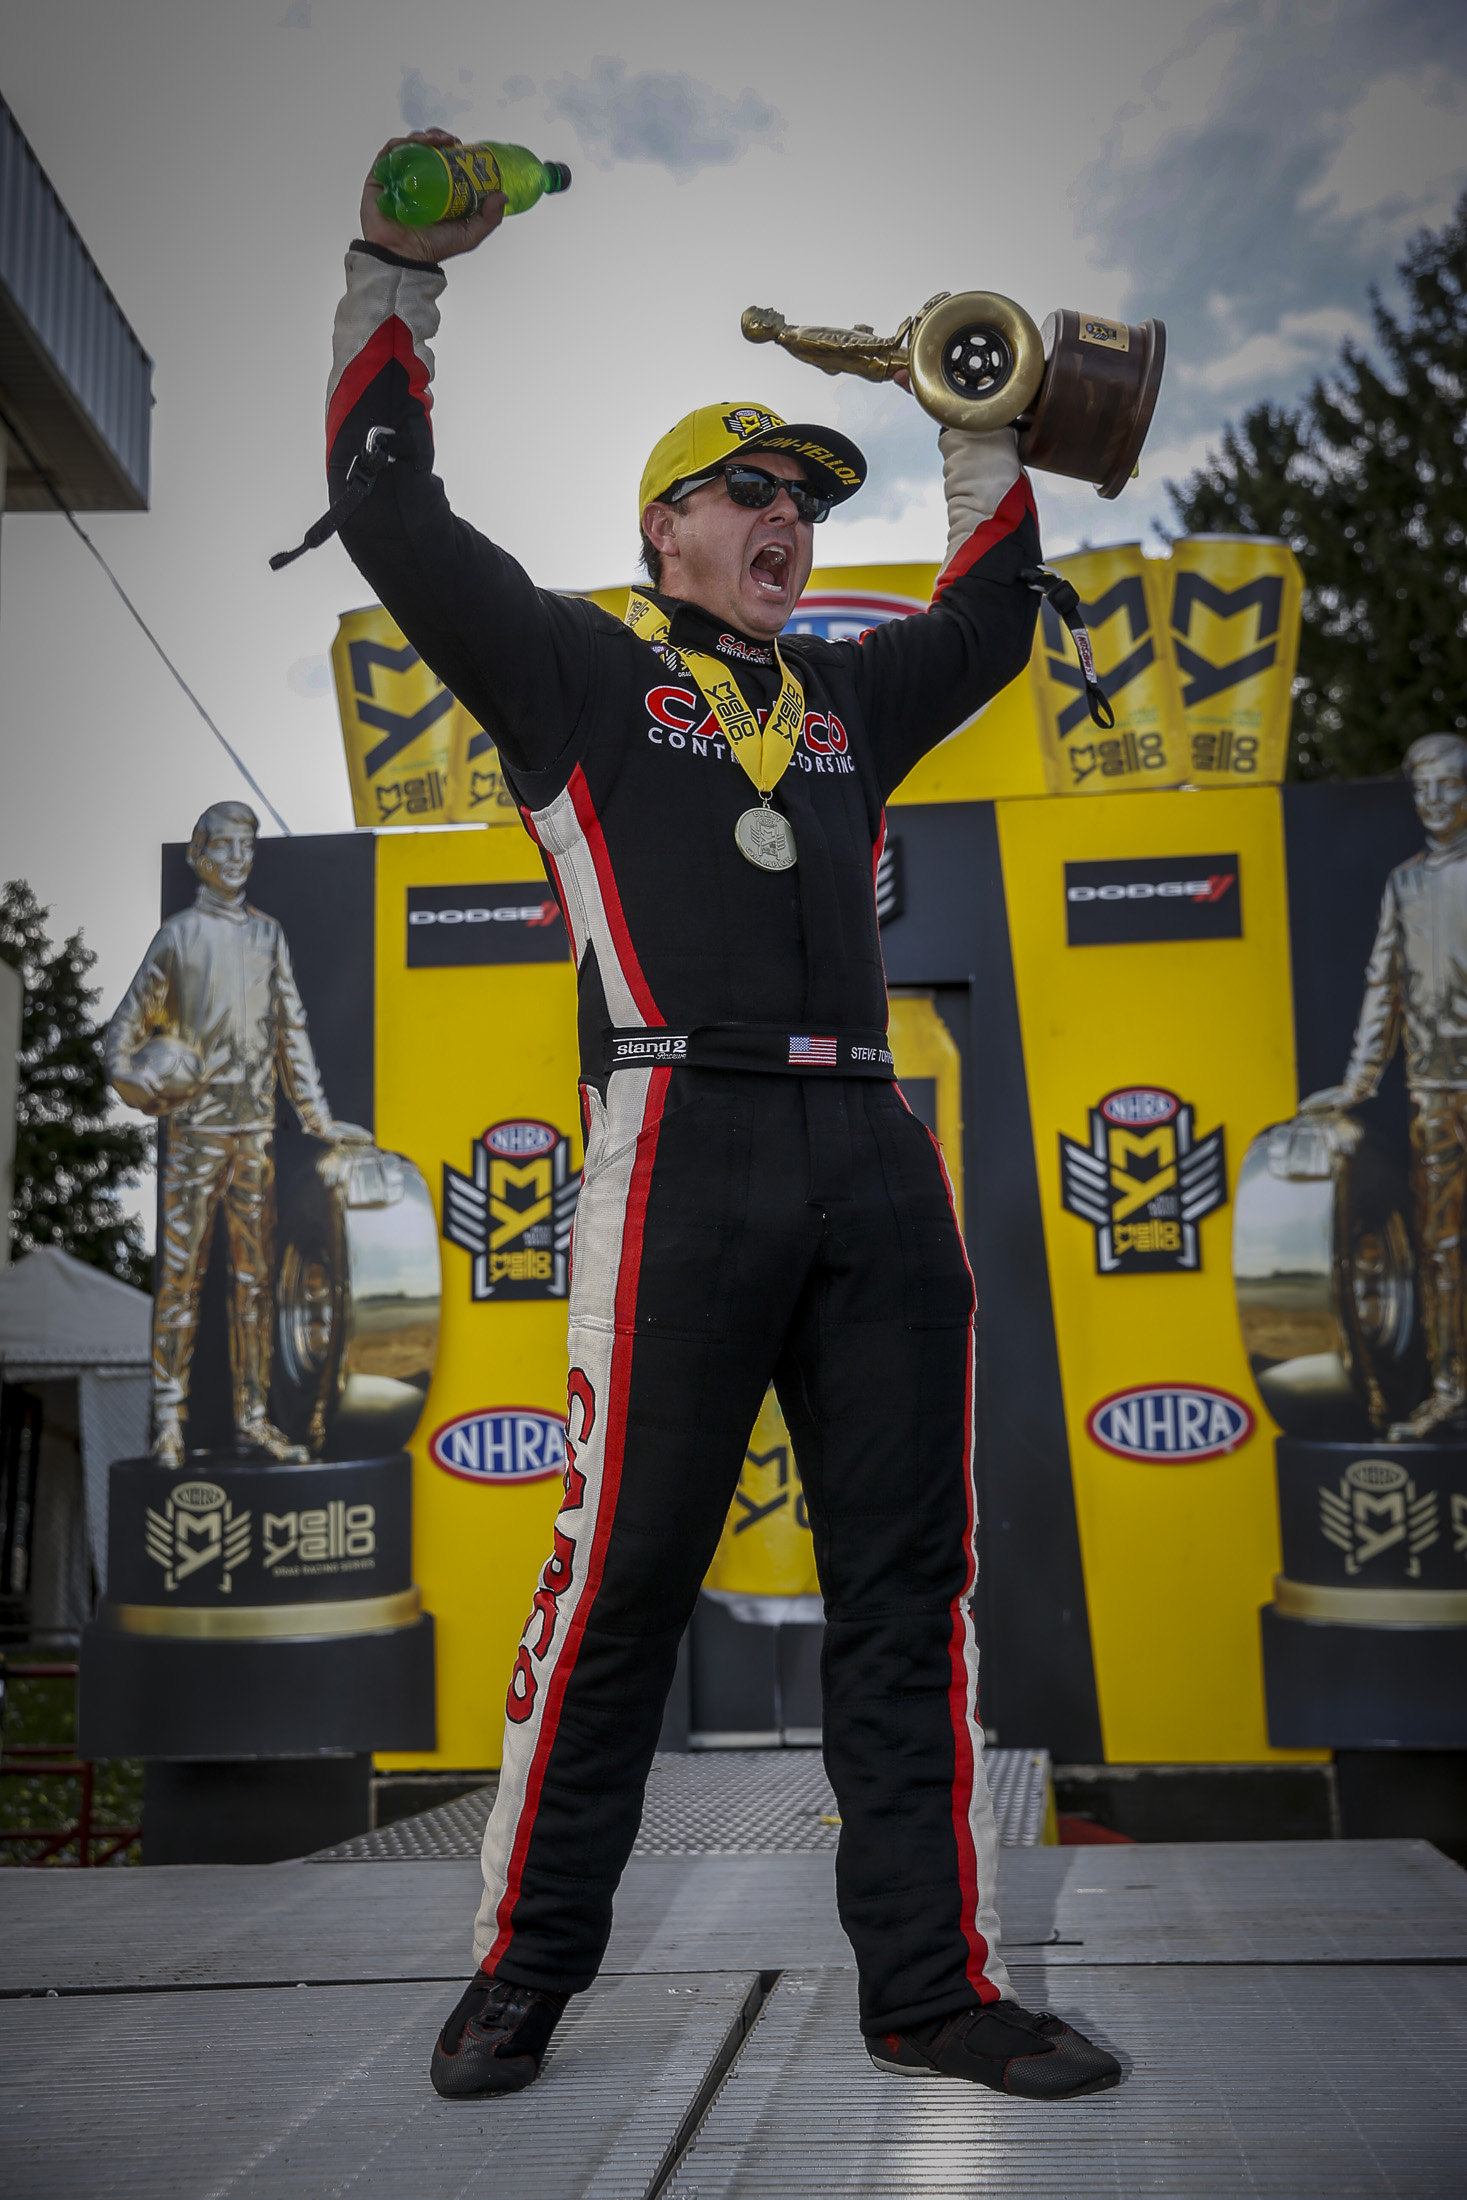 Top Fuel Dragster pilot Steve Torrence celebrating with the Wally after winning the Dodge NHRA Nationals